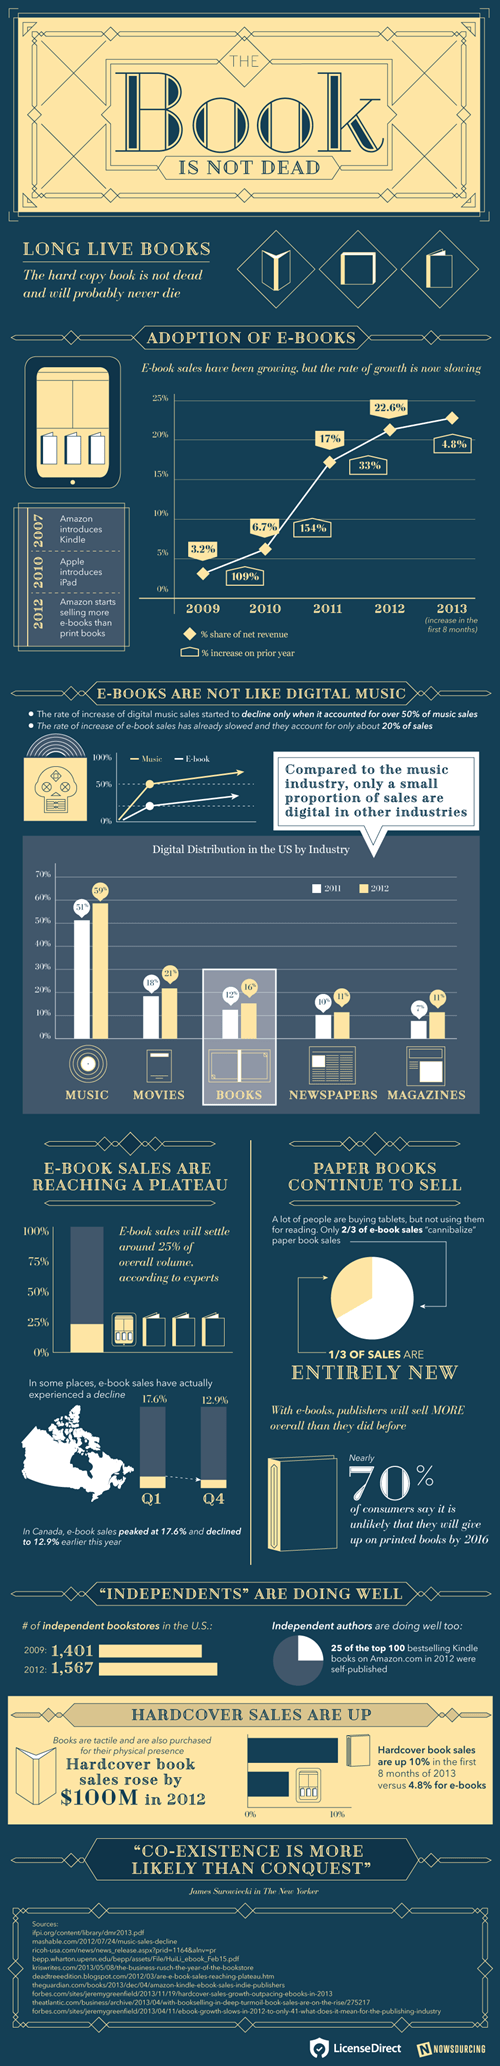 books,infographic,reading